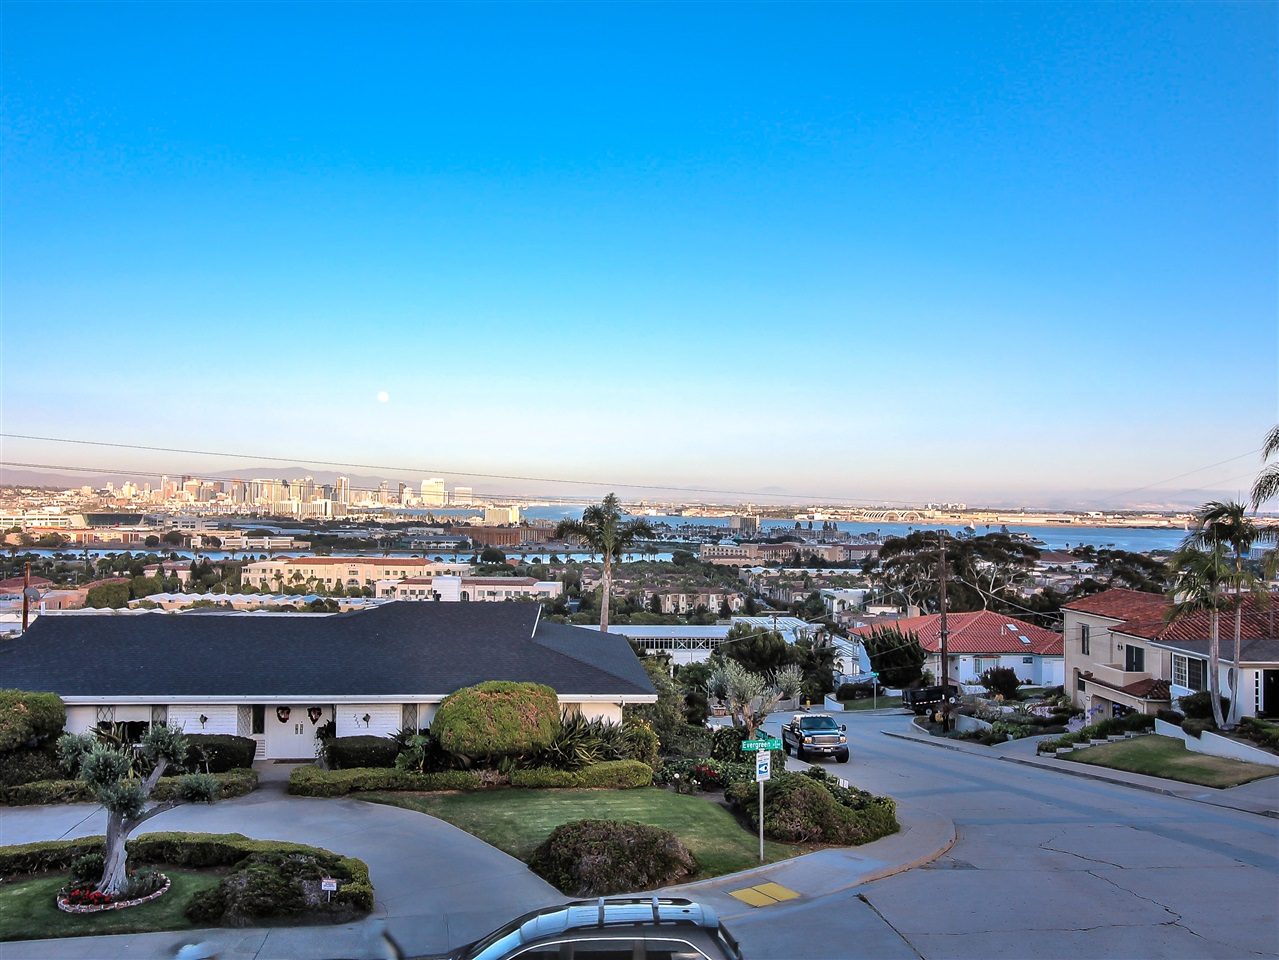 Spectacular Panoramic Bay & City Views from this well designed, 4205 Sq. Ft. floor plan. The home is well positioned on a flat 10,000 Sq. Ft. corner lot in a quiet neighborhood surrounded by large beautiful homes.   An inviting 4 BR + Optional 5th BR and 4 Bathrooms overlooking Downtown & Harbor Views or the expansive backyard & large swimming pool. All rooms are generously proportioned & have dramatic Views!  Over-size 2 Car garage + adjacent pad to park your RV or boat.  Lots of storage space throughout*Additional Photos soon to follow*.  New carpet & paint throughout.  Custom built in 1973 by the current/original owners. Lovingly maintained over the years.  The over-sized garage has abundant storage and a workshop.  The flat usable backyard has tremendous potential.